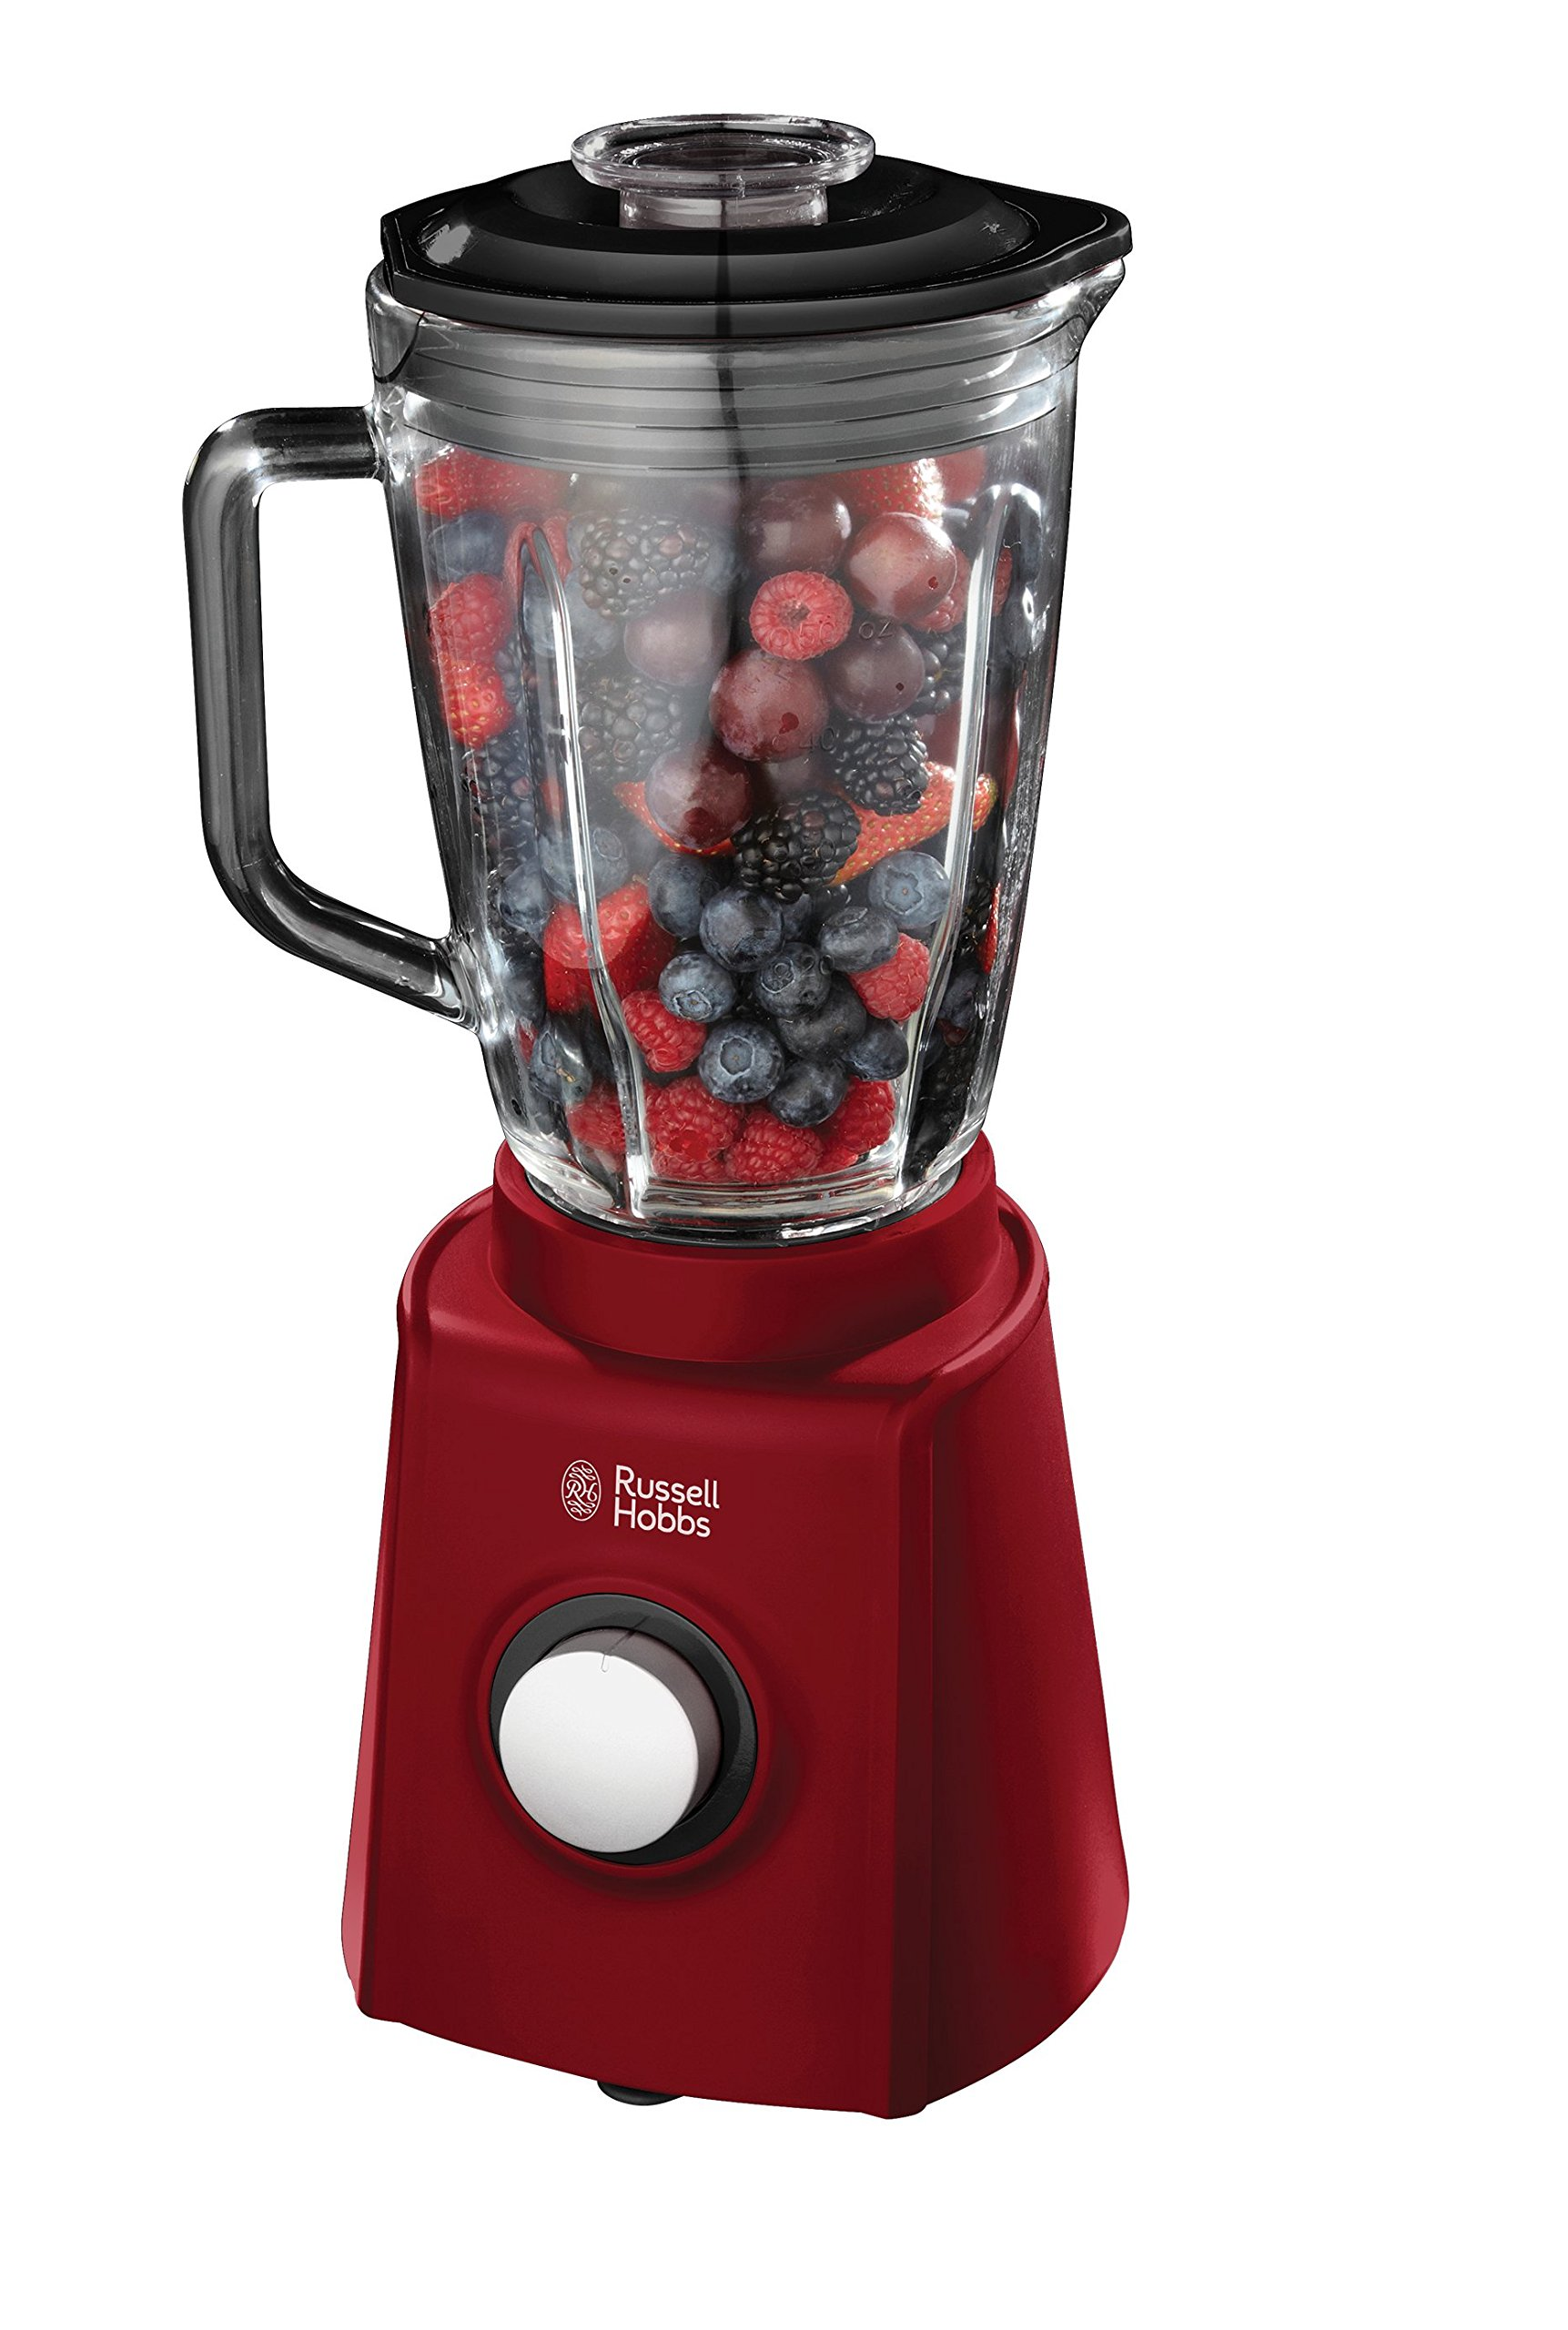 Russell-Hobbs-18996-56-Glas-Standmixer-Desire-Impuls-Ice-Crush-Funktion-08-PS-Motor-26000-Umin-15l-rot